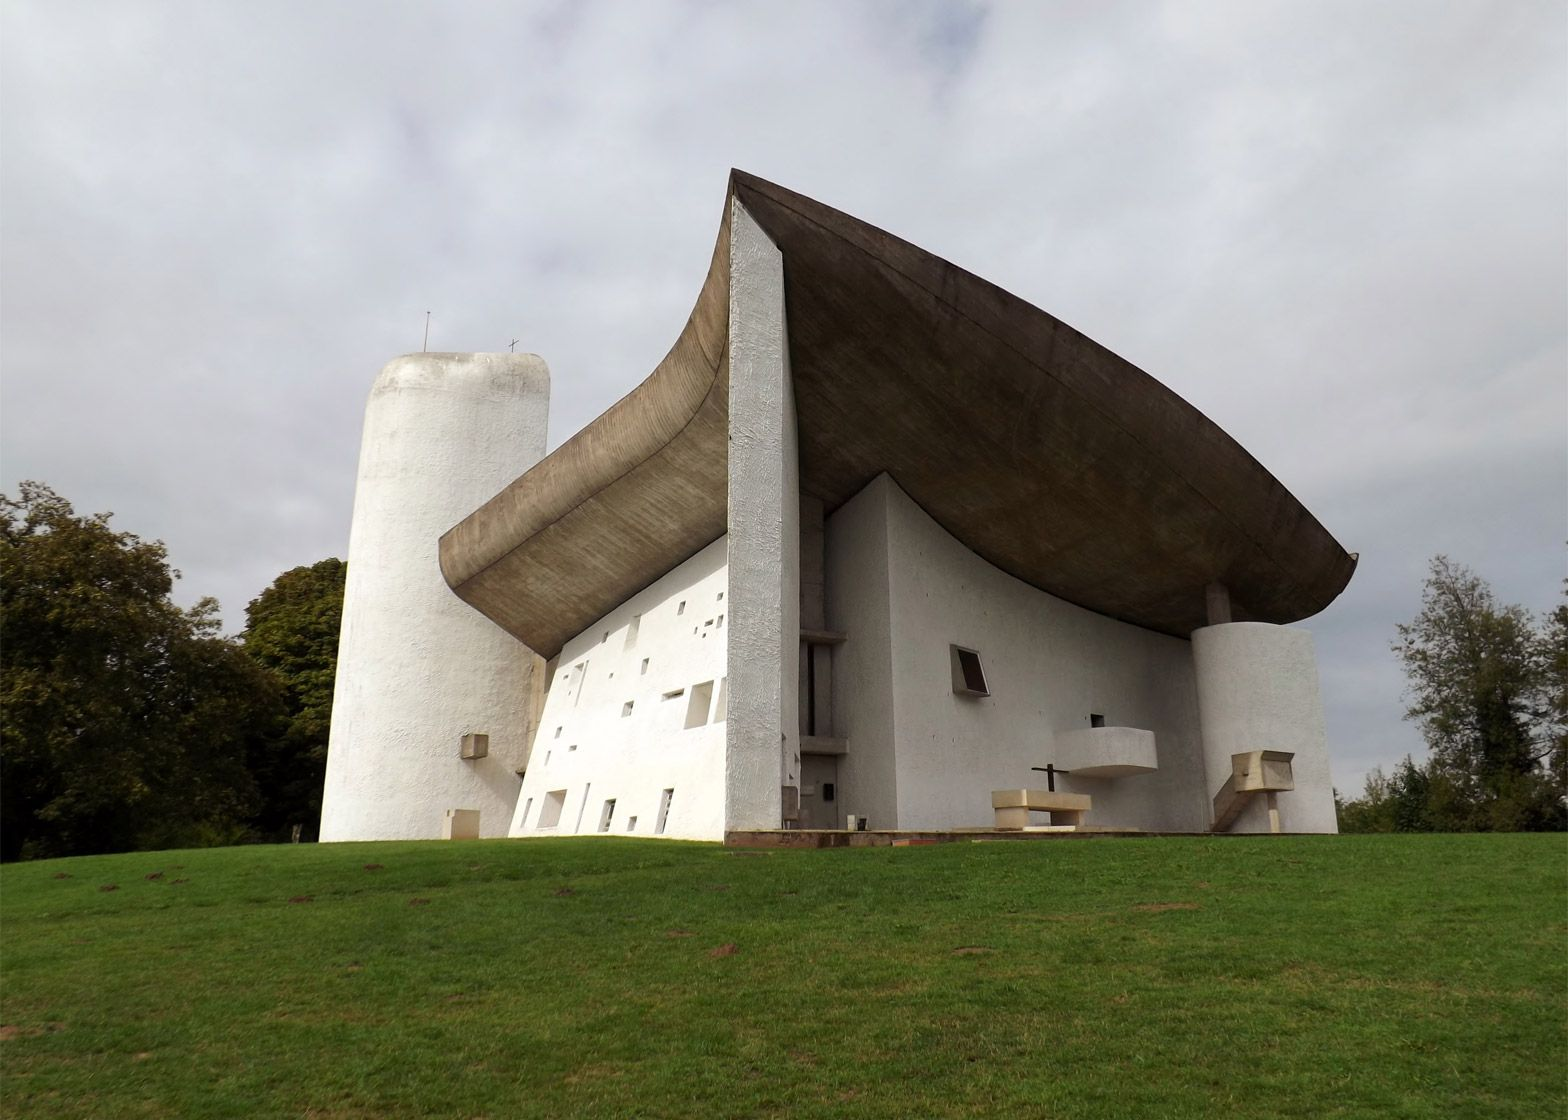 Le Corbusier's Ronchamp chapel is one of his most important buildings